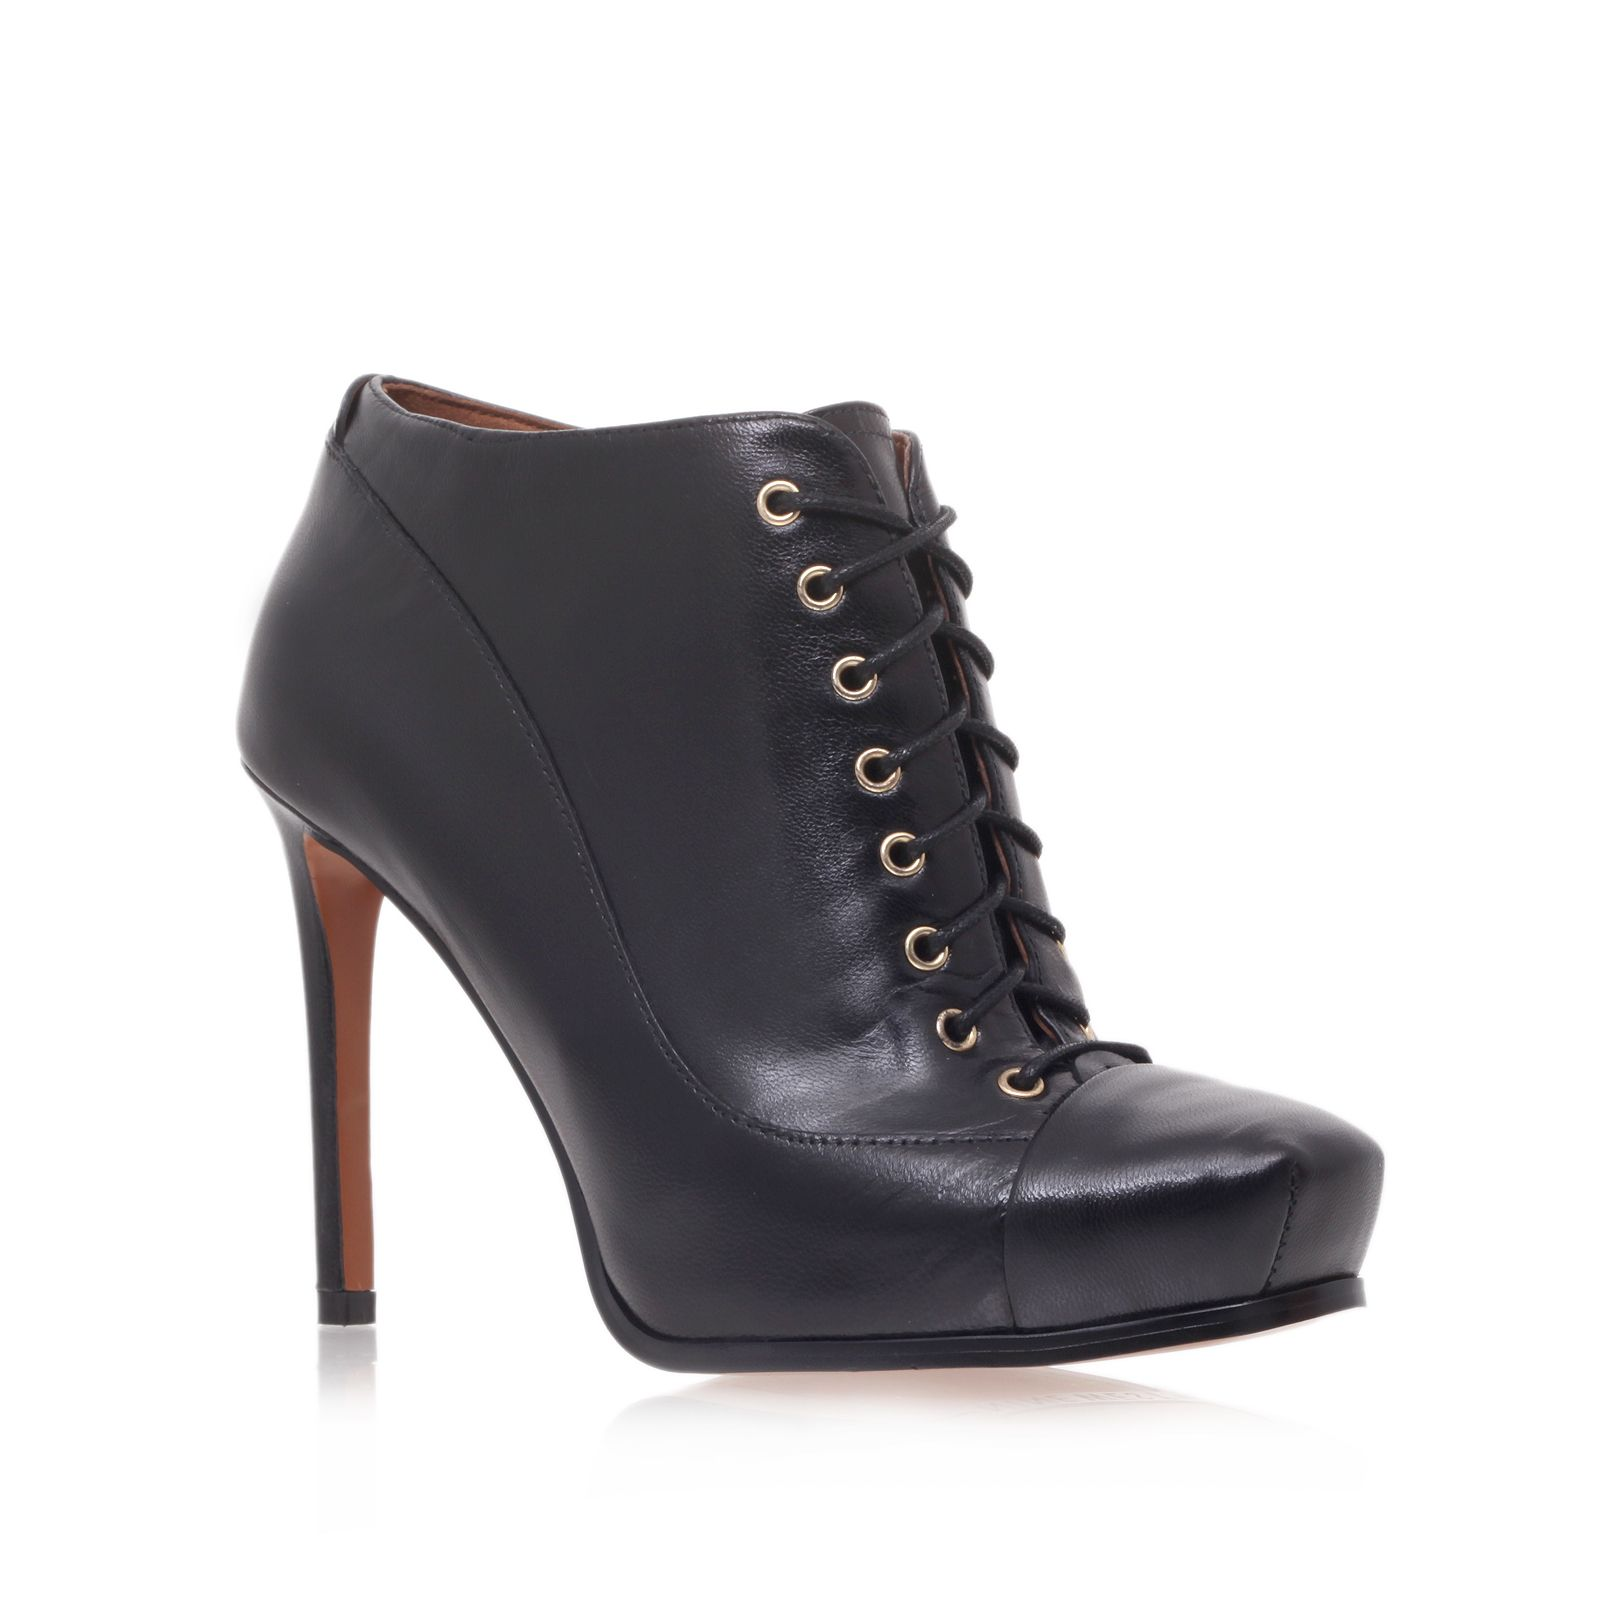 Oliviana high heel lace up shoe boot